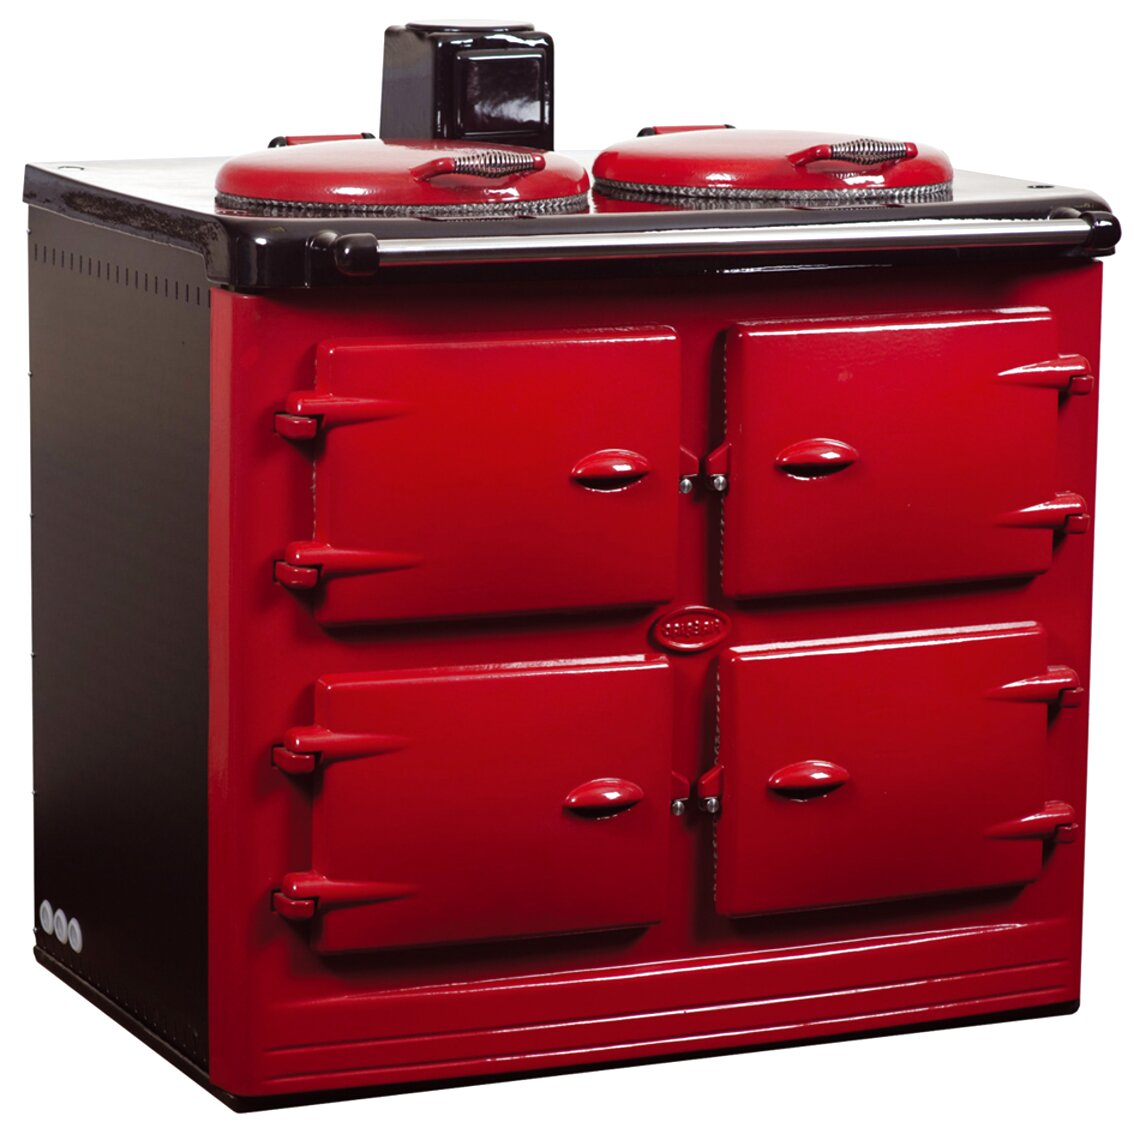 oil fired cooker for sale